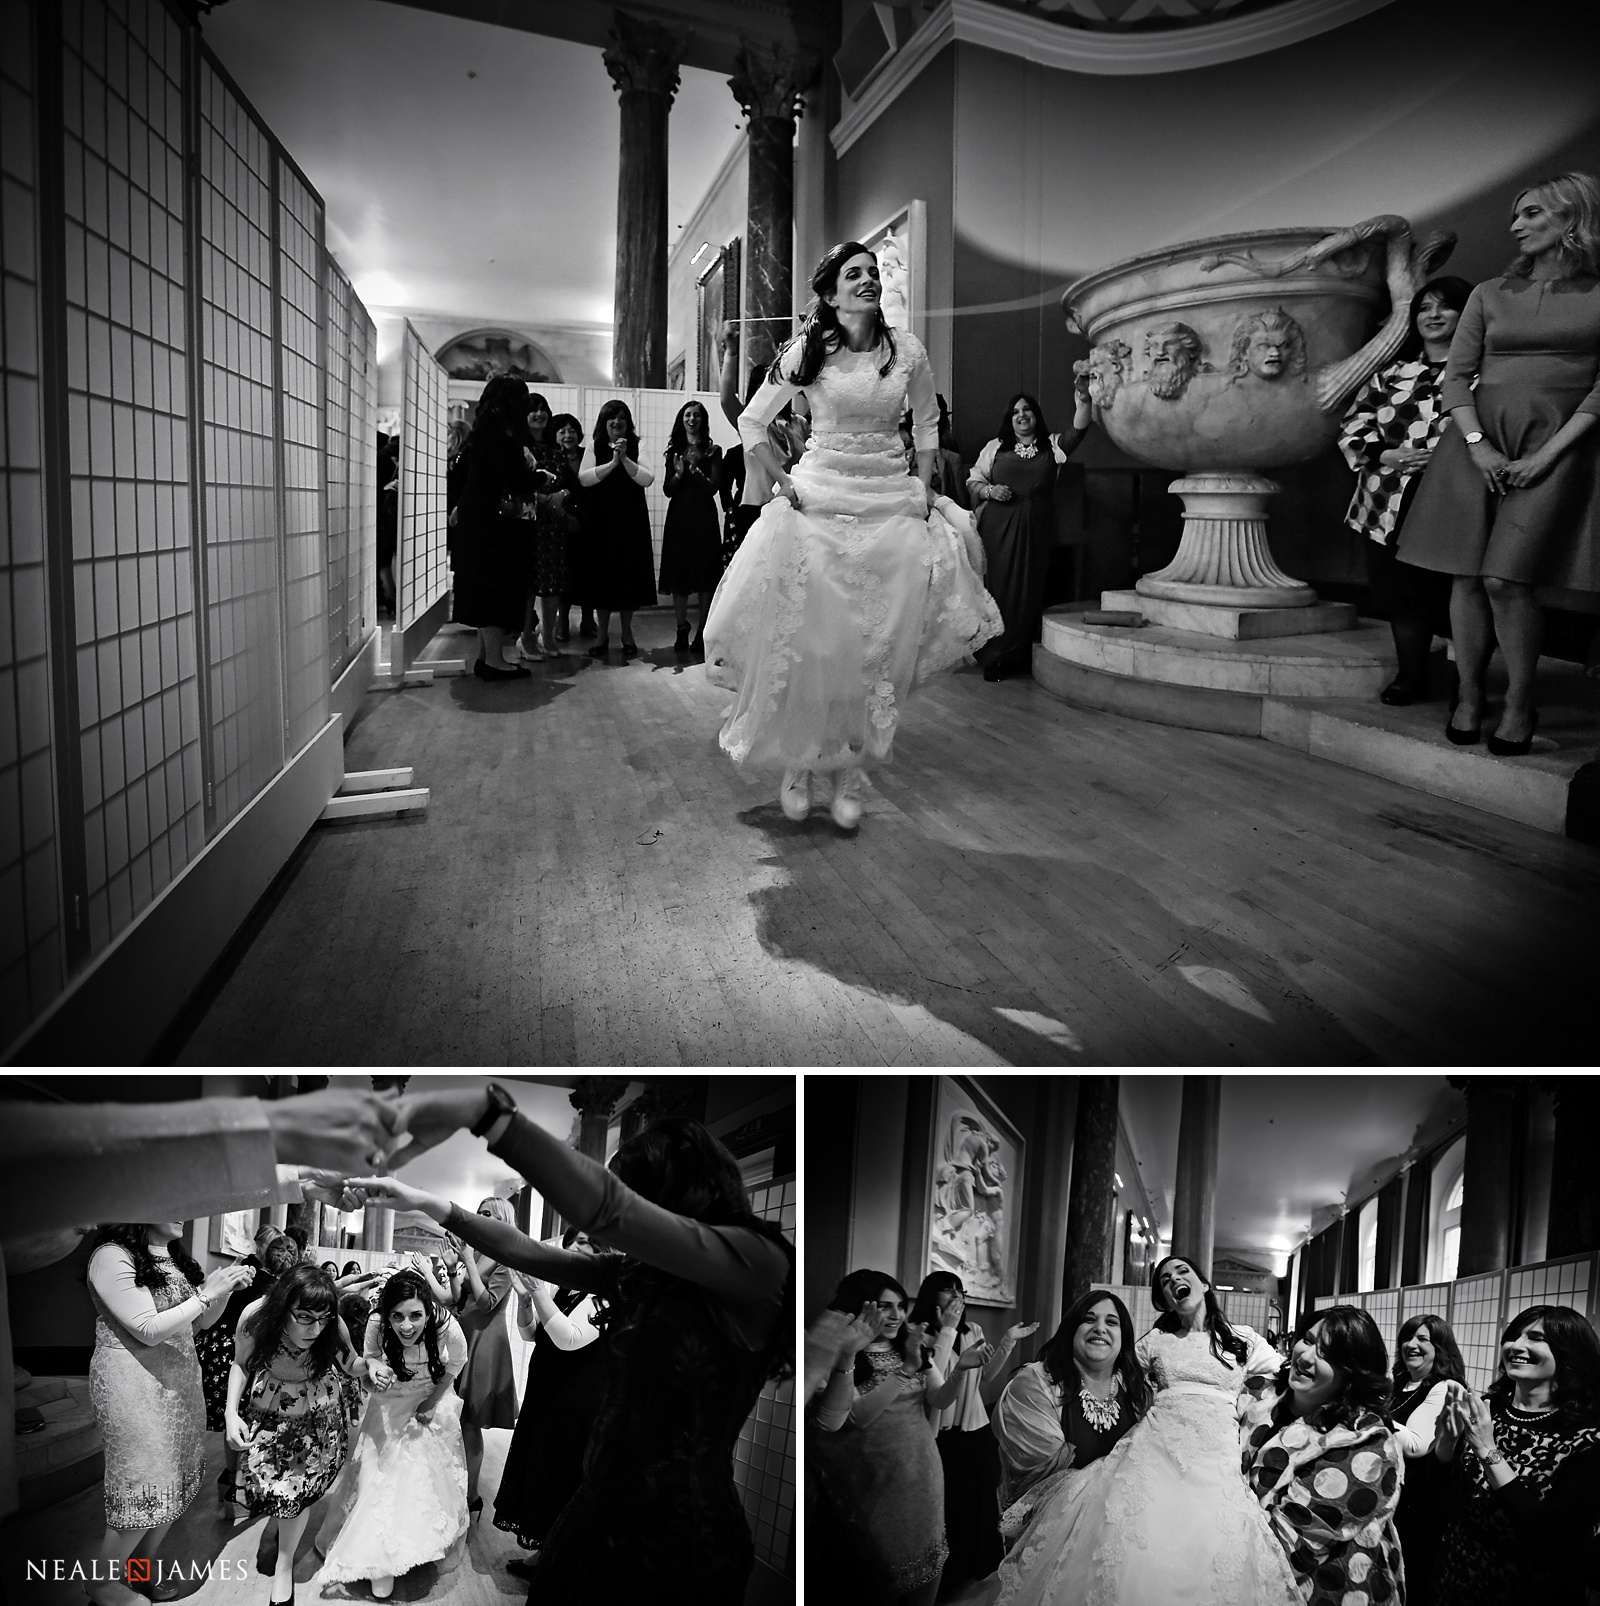 Black and white photograph of dancing during a wedding